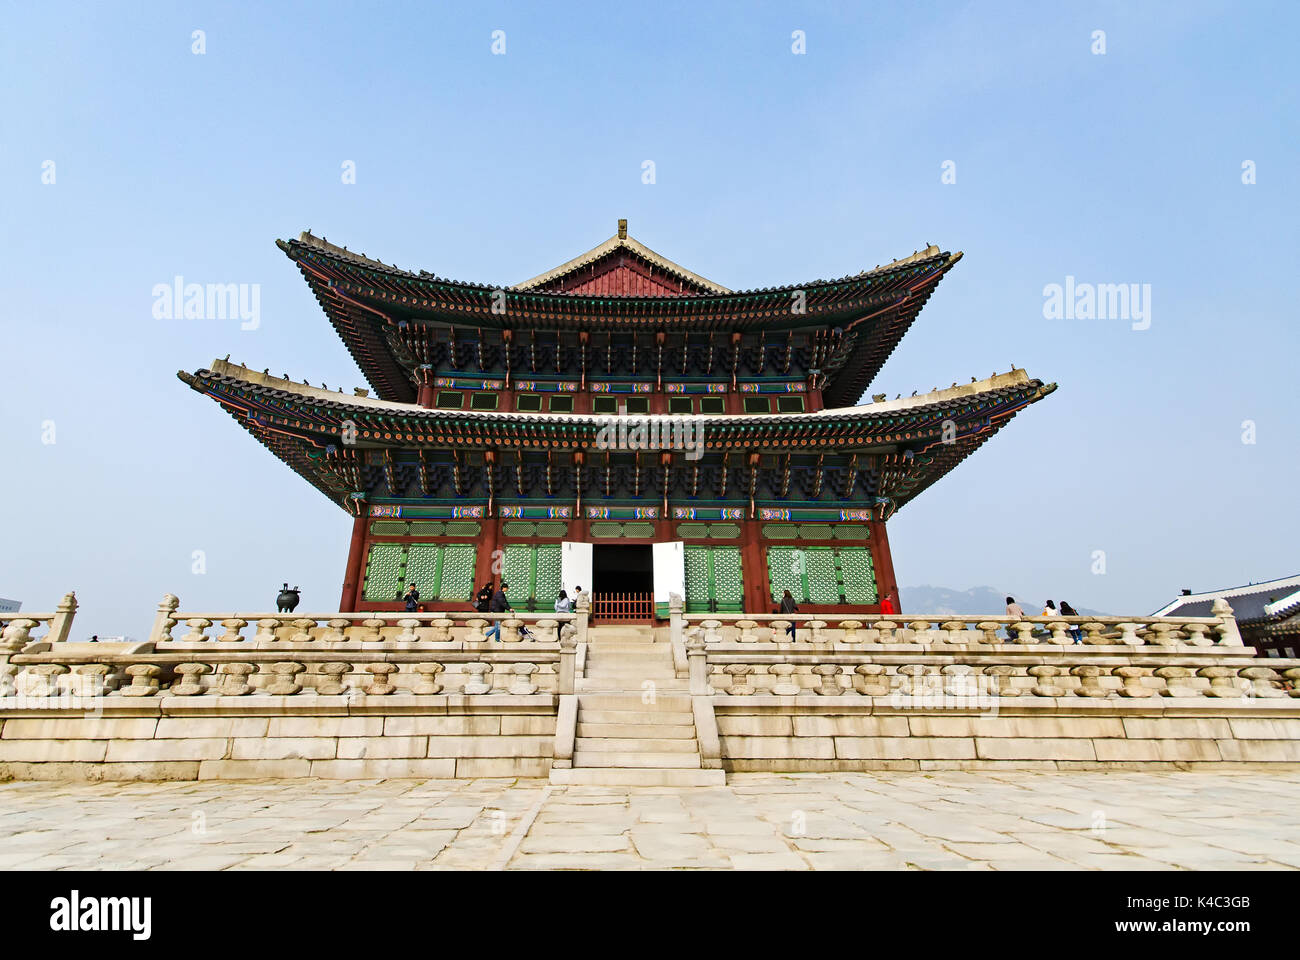 Gyeongbukgung palace also known as Gyeongbokgung Palace or Gyeongbok Palace, was the main royal palace of the Joseon dynasty. Located in Seoul, South  - Stock Image